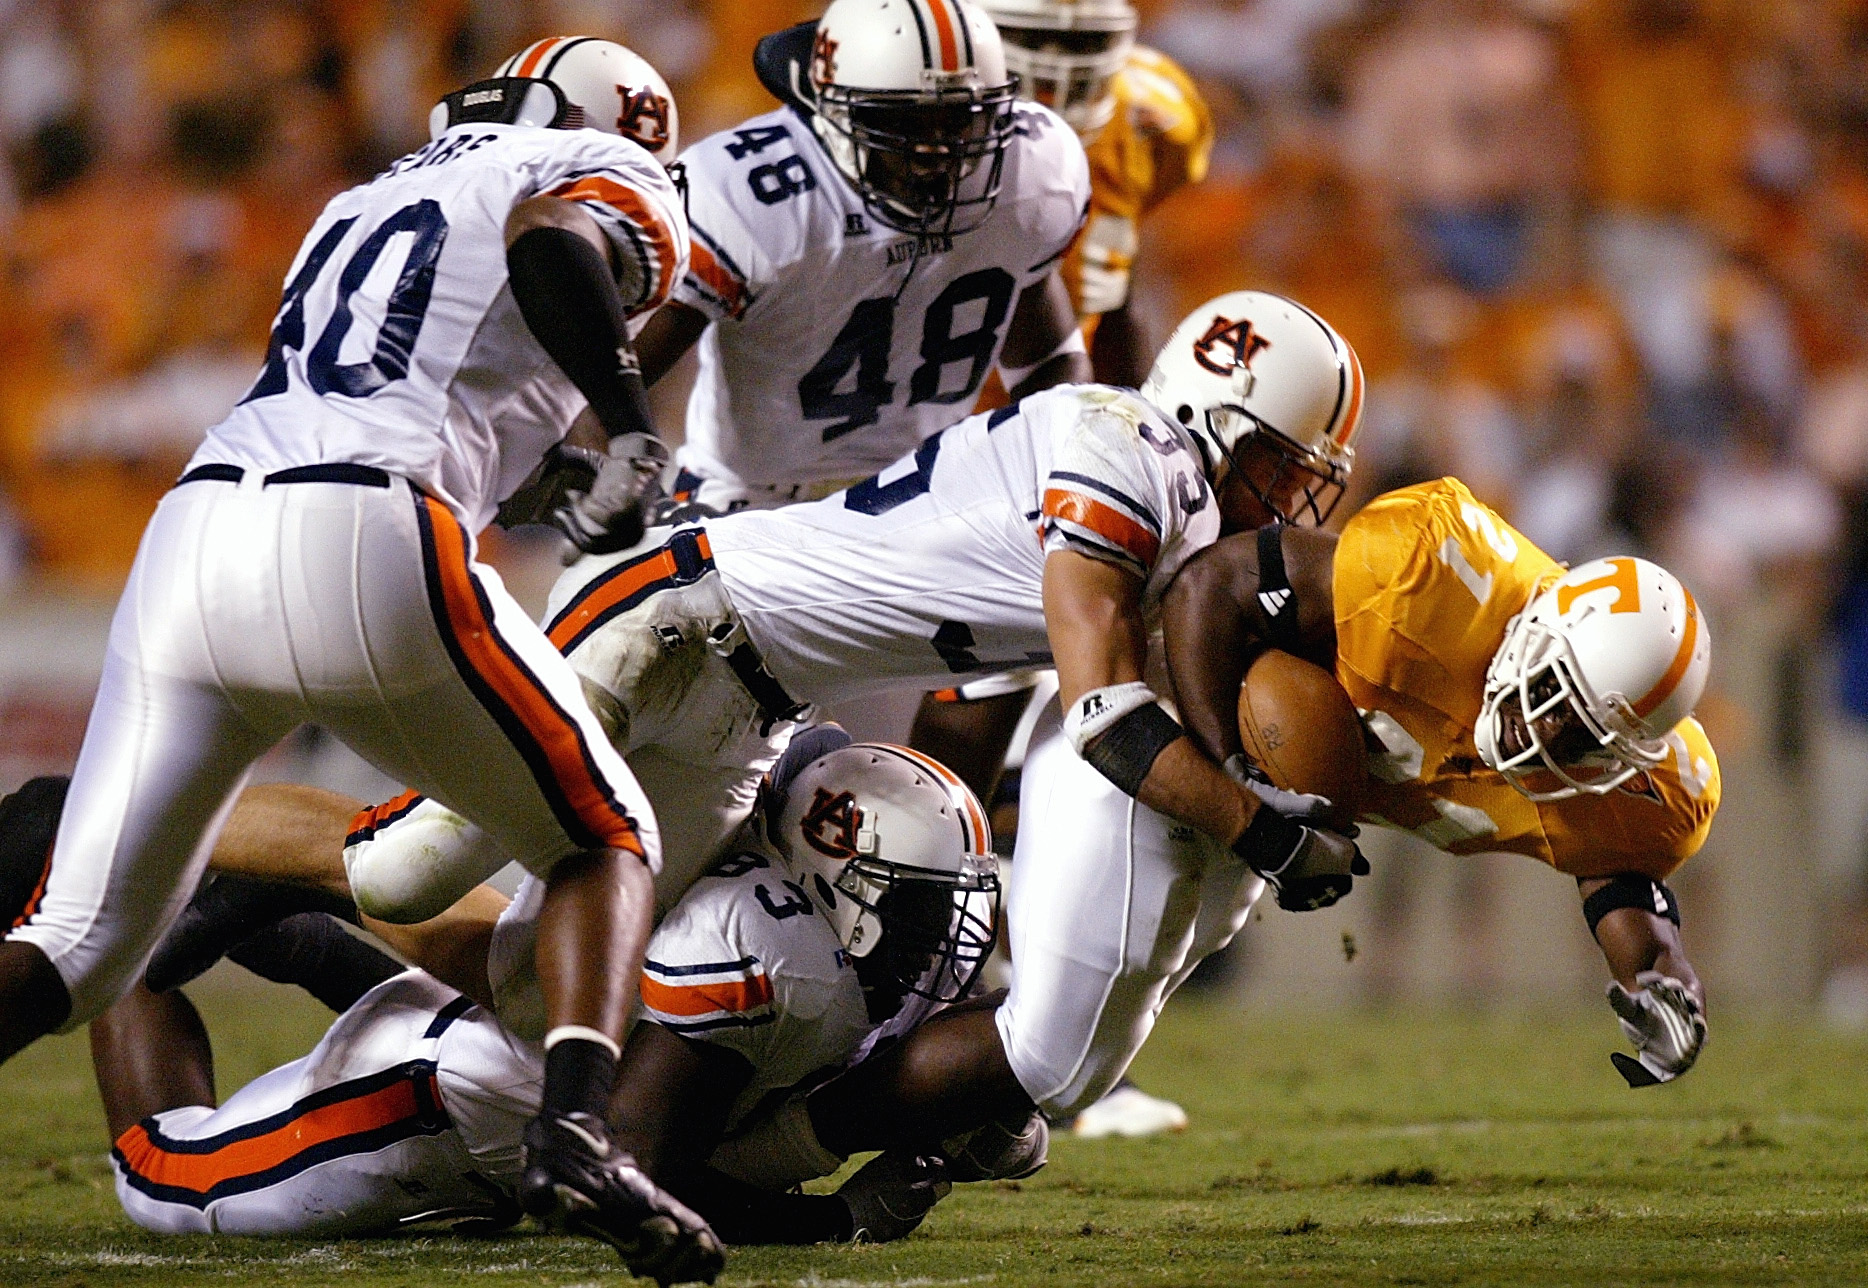 KNOXVILLE, TN - OCTOBER 2:  Cedric Houston #21 of the Tennessee Volunteers is swarmed by the Auburn Tigers defense at Neyland Stadium on October 2, 2004 in Knoxville, Tennessee. (Photo by Streeter Lecka/Getty Images)